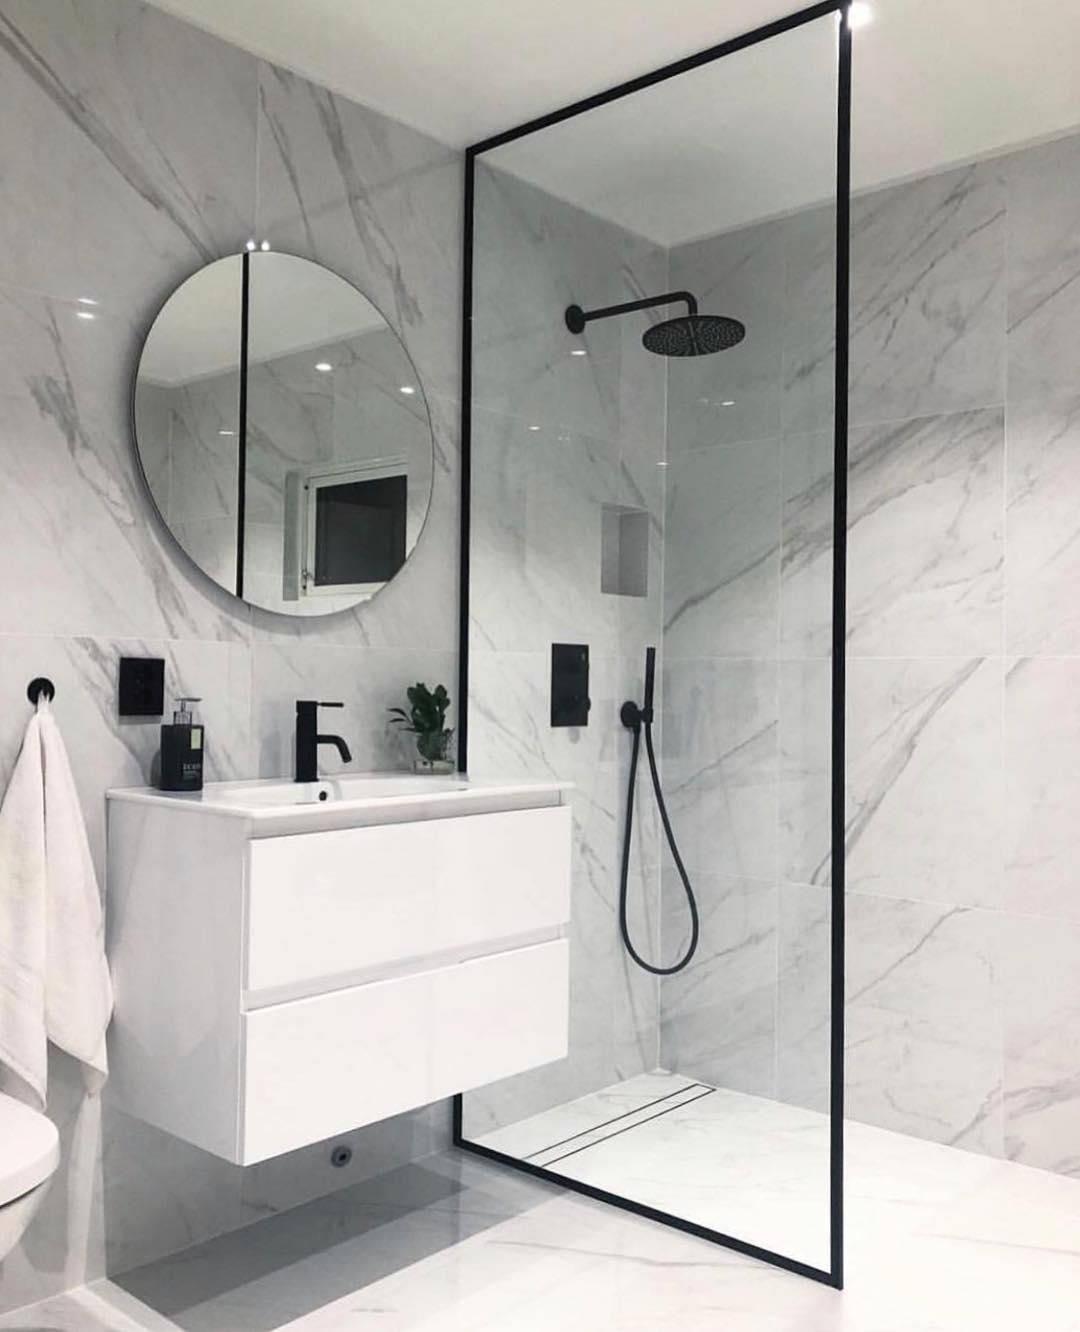 Daily Design Inspo At Best Interior Designers Blog Interieurdesign Wohndesign Dizajnerinte Bathroom Interior Design Modern Bathroom Design Bathroom Interior